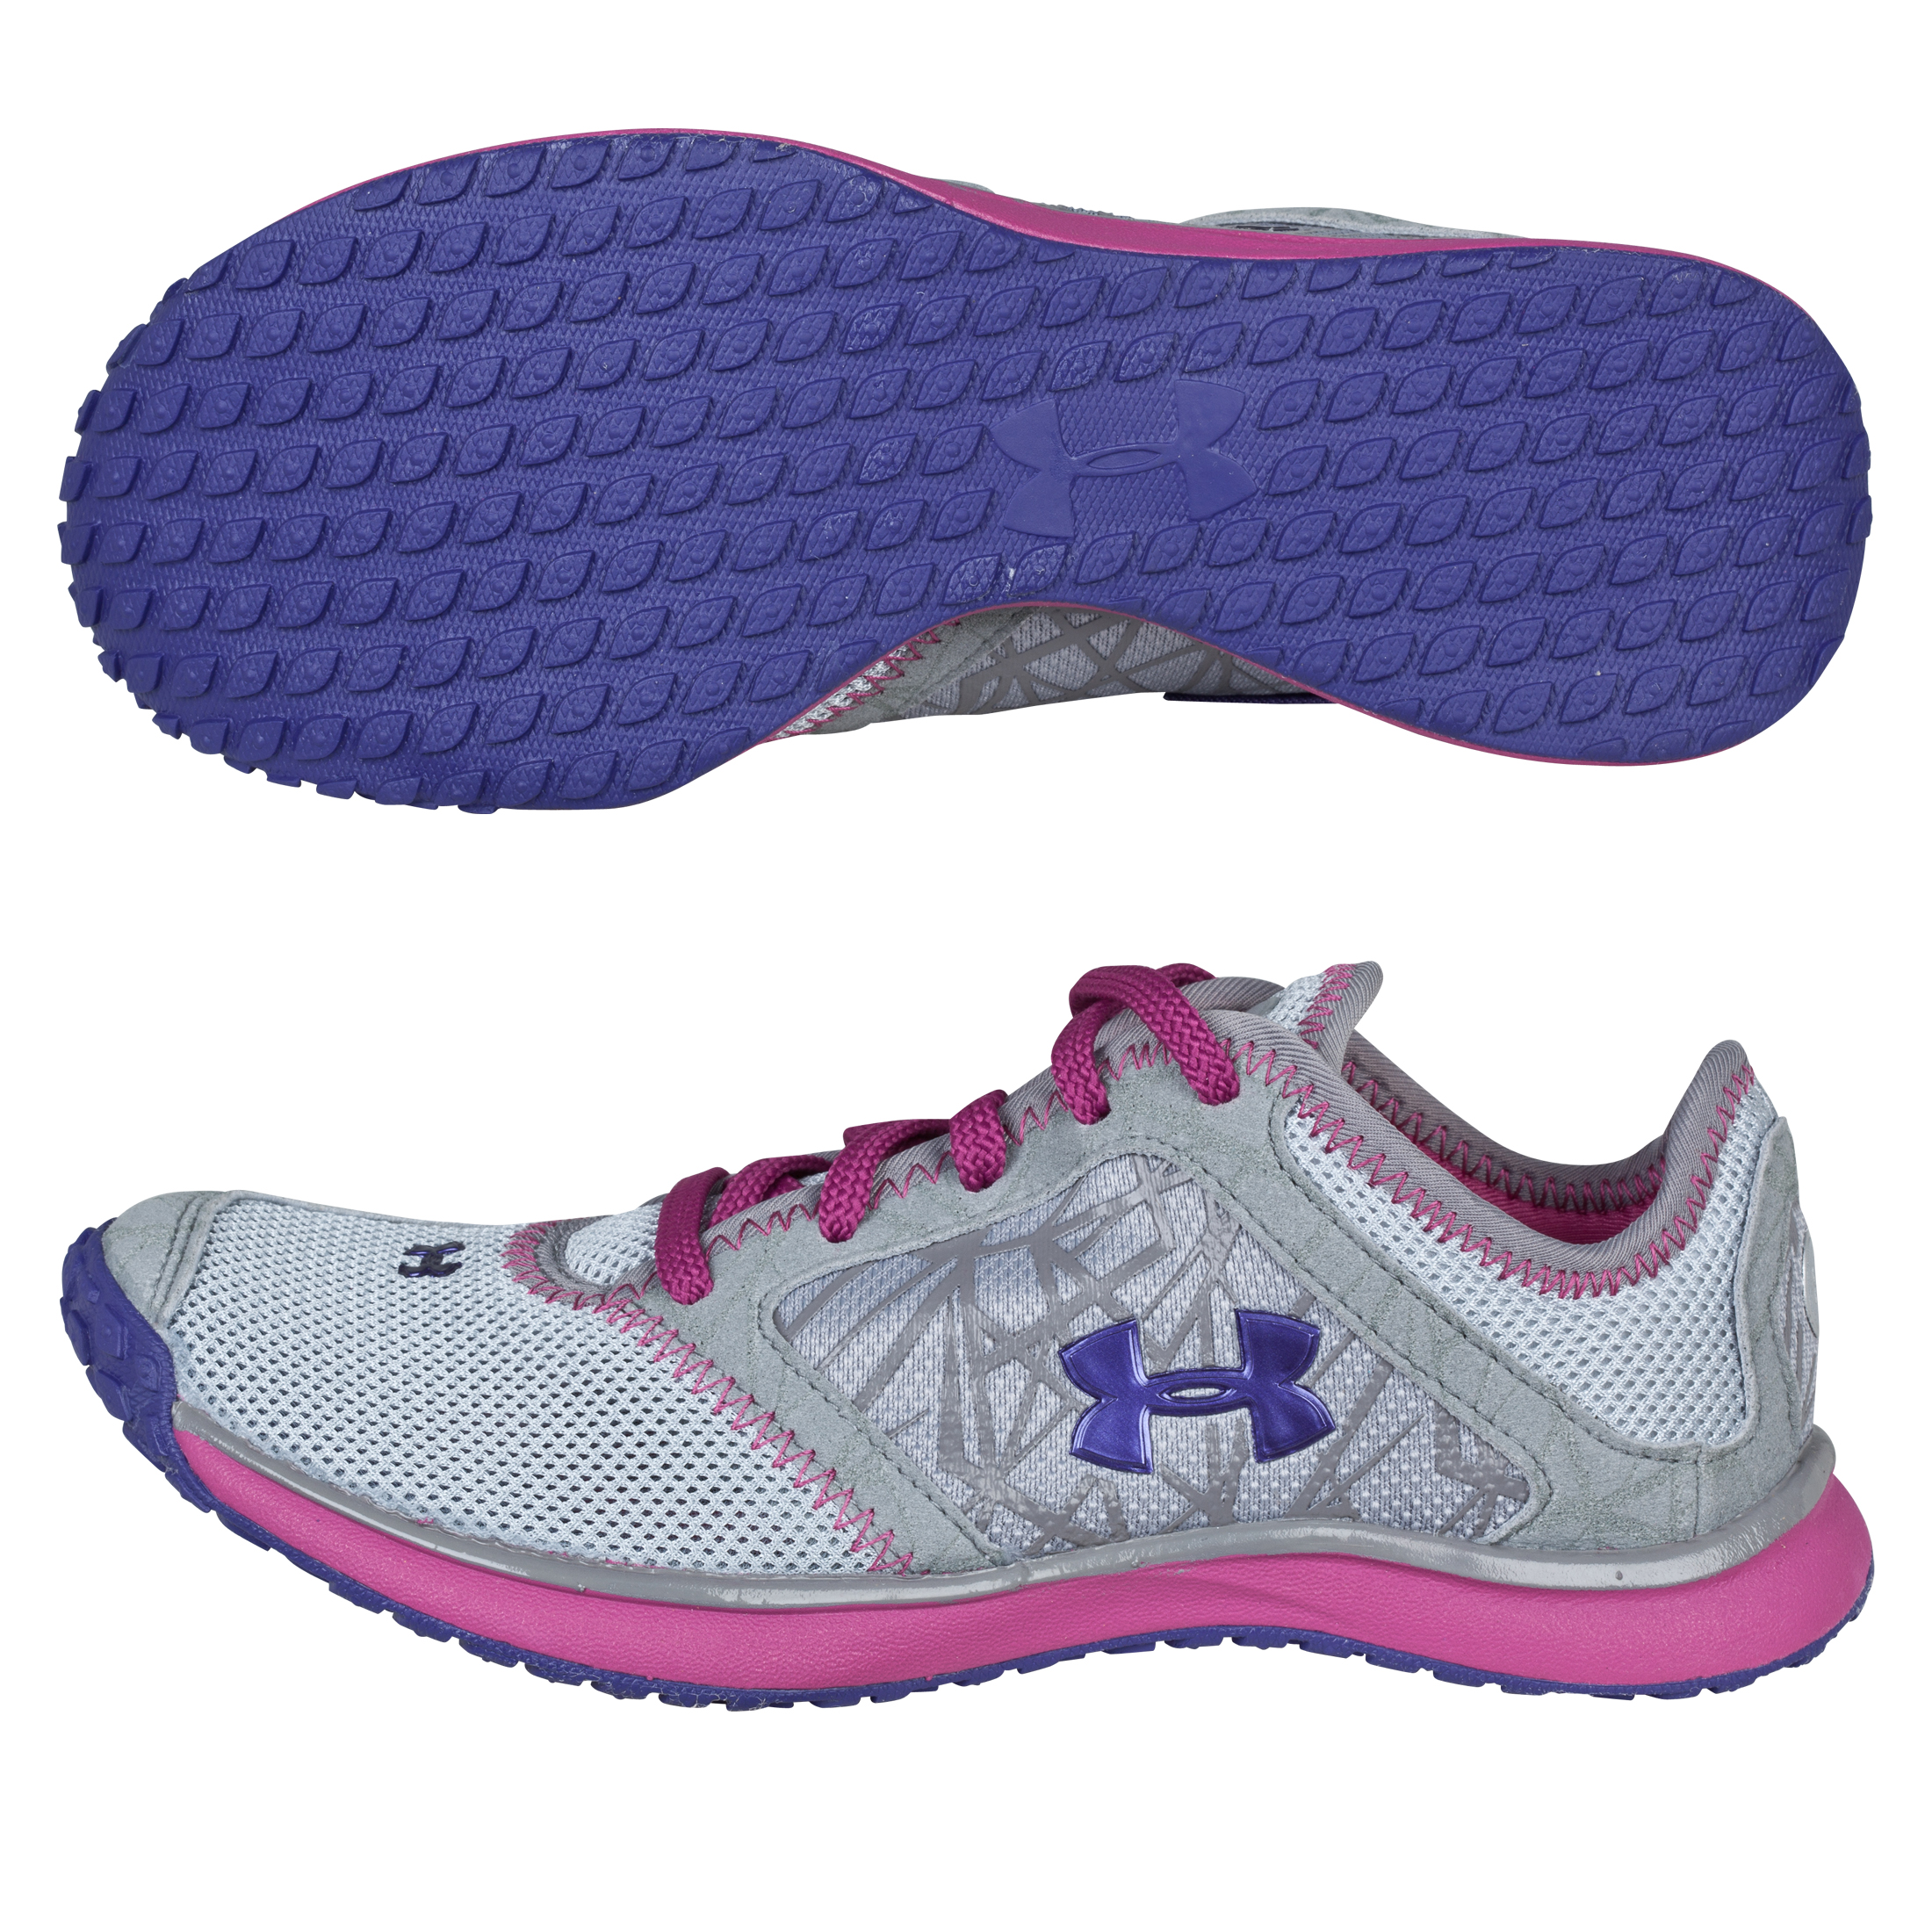 Under Armour Go Trainers - SLV/RSW/PLU